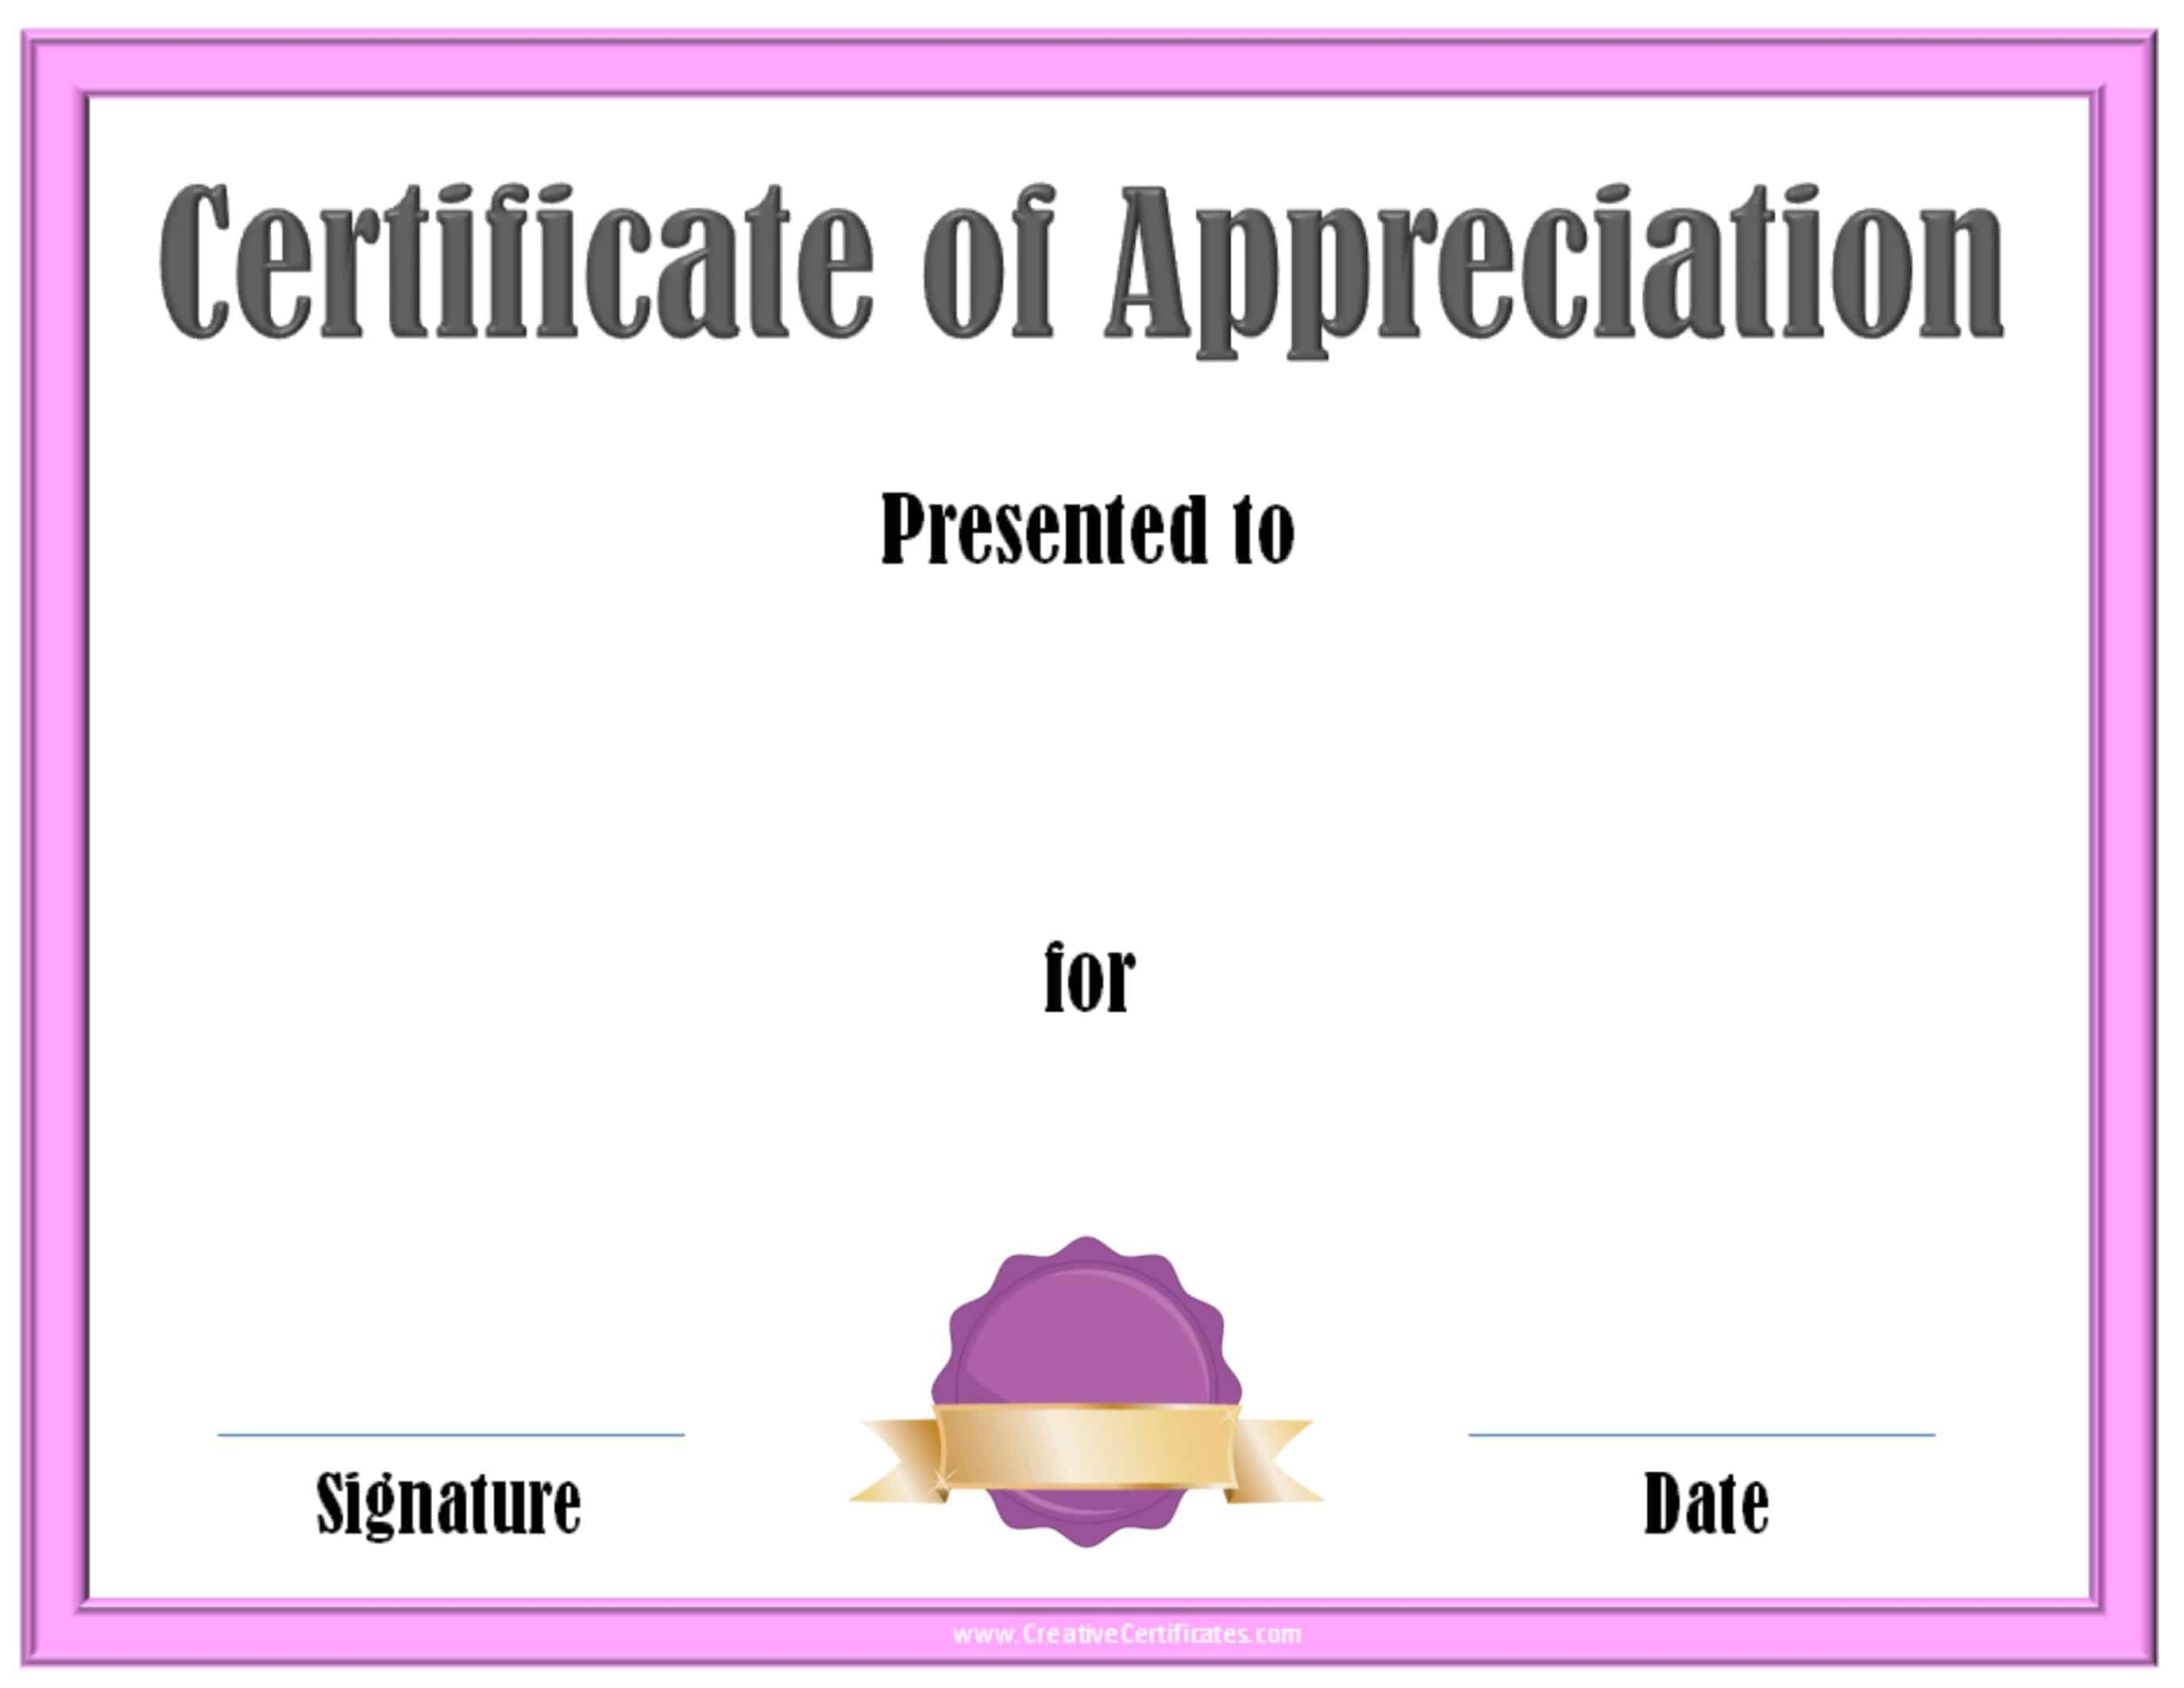 Certificate of Appreciation Template – Certificates of Recognition Templates